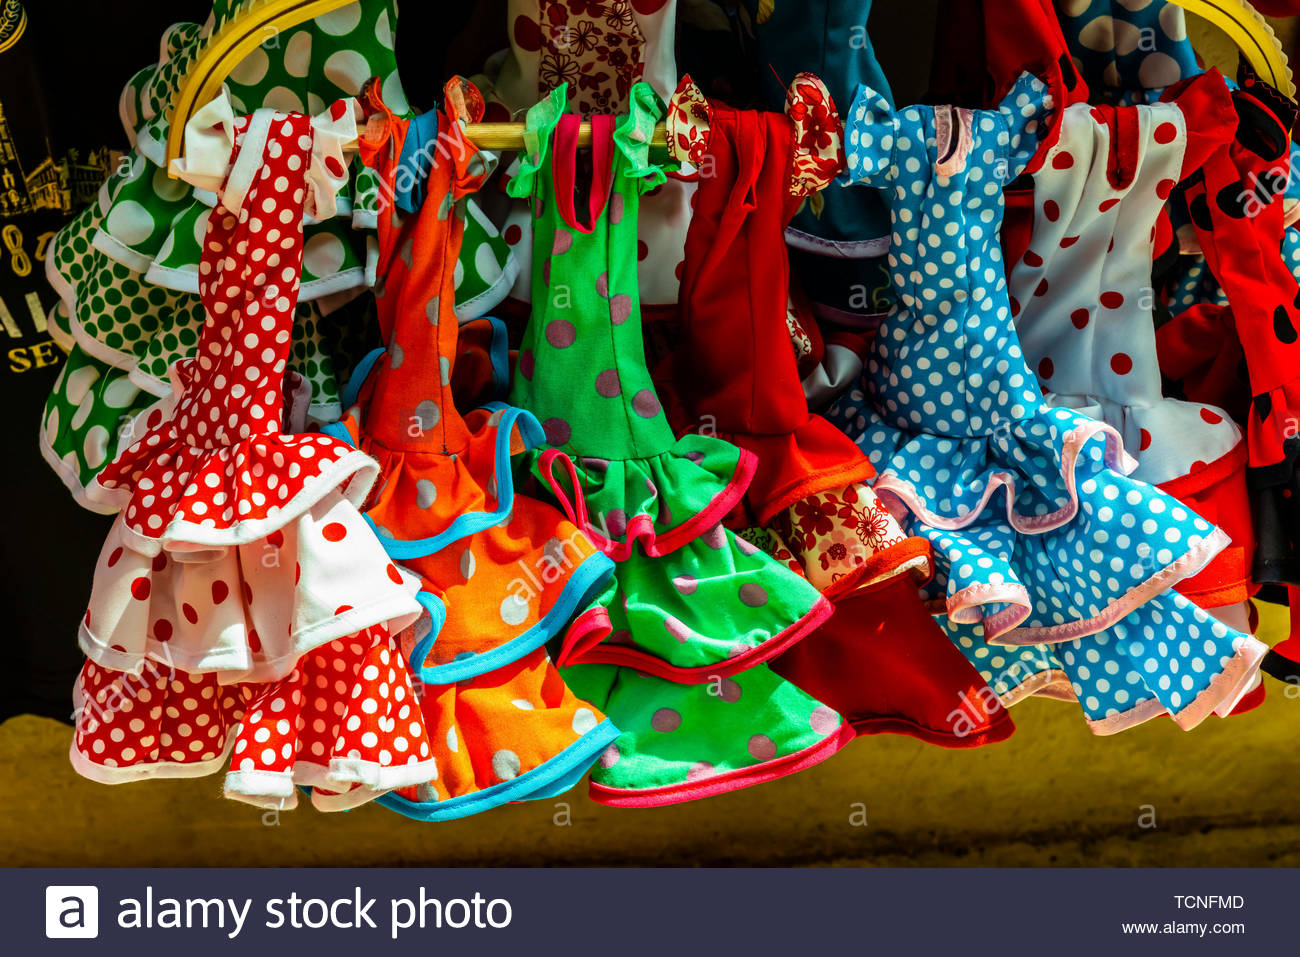 Flamenco doll costumes, Seville, Andalusia, Spain. - Stock Image